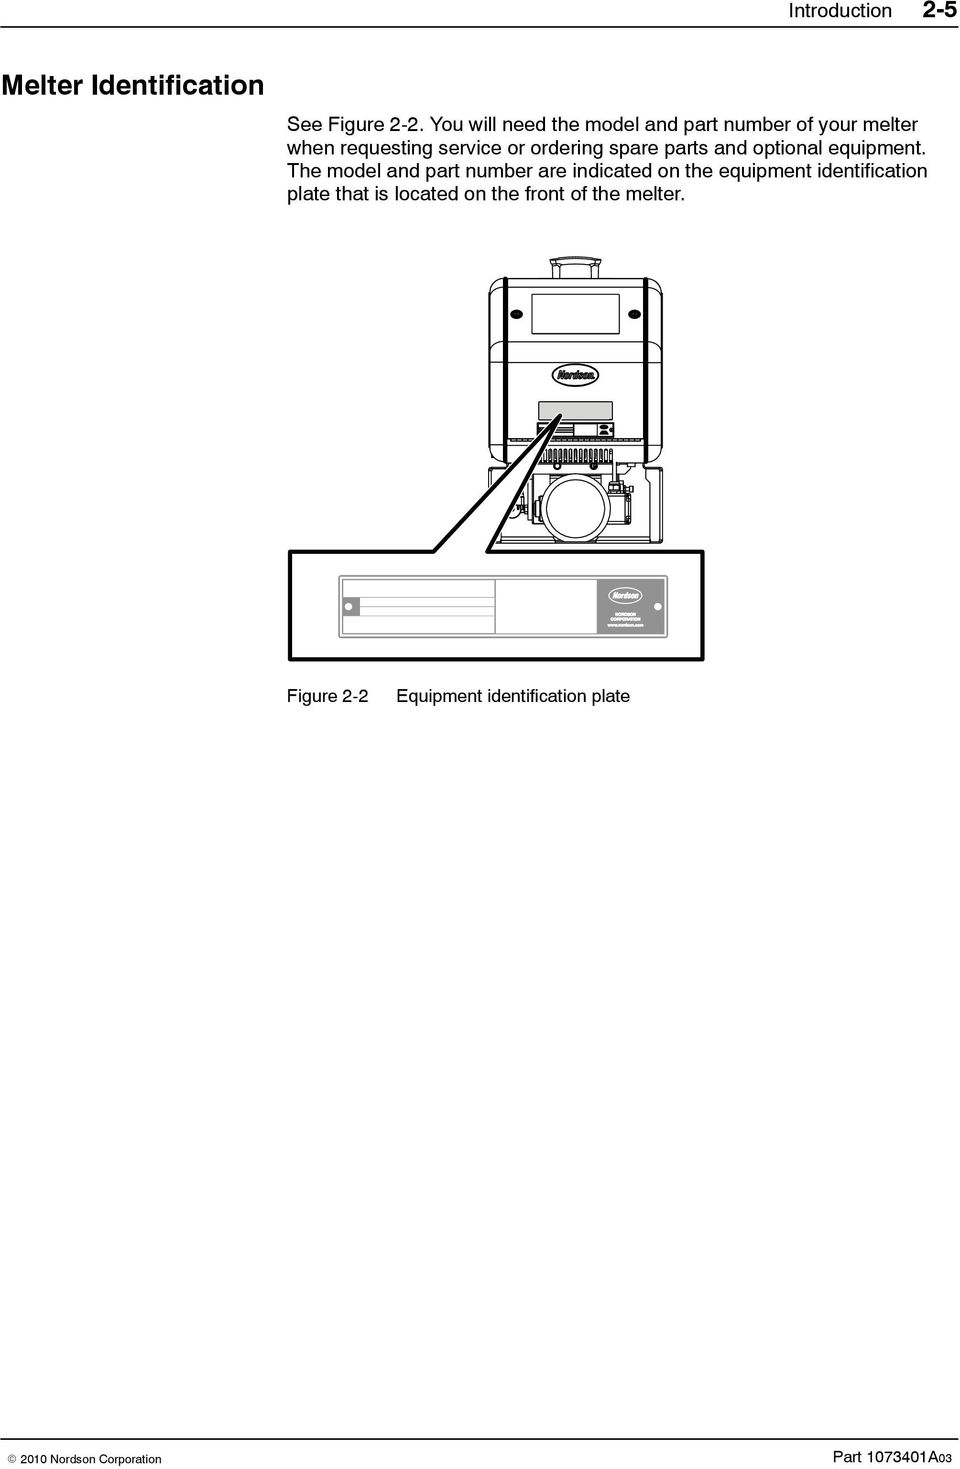 Introduction Section 2 Pdf Drayton Central Heating Programmer Wiring Diagram Ordering Spare Parts And Optional Equipment